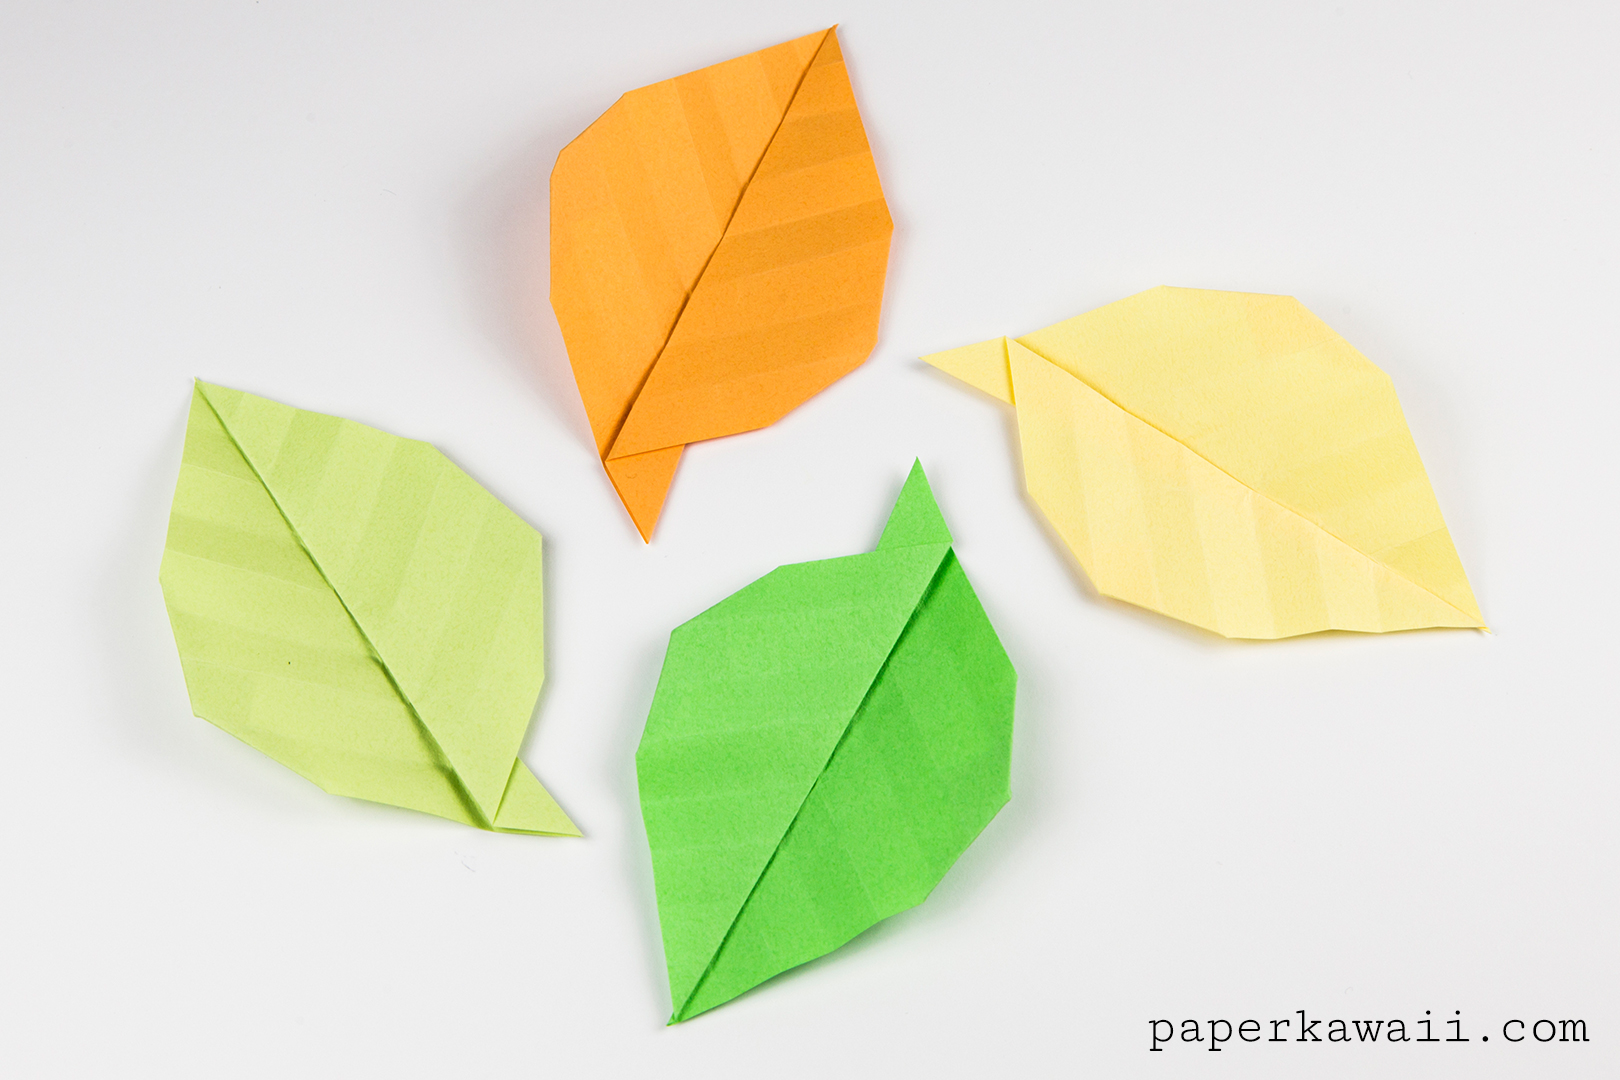 Simple origami leaf instructions video tutorial paper kawaii - Origami paper tutorial ...